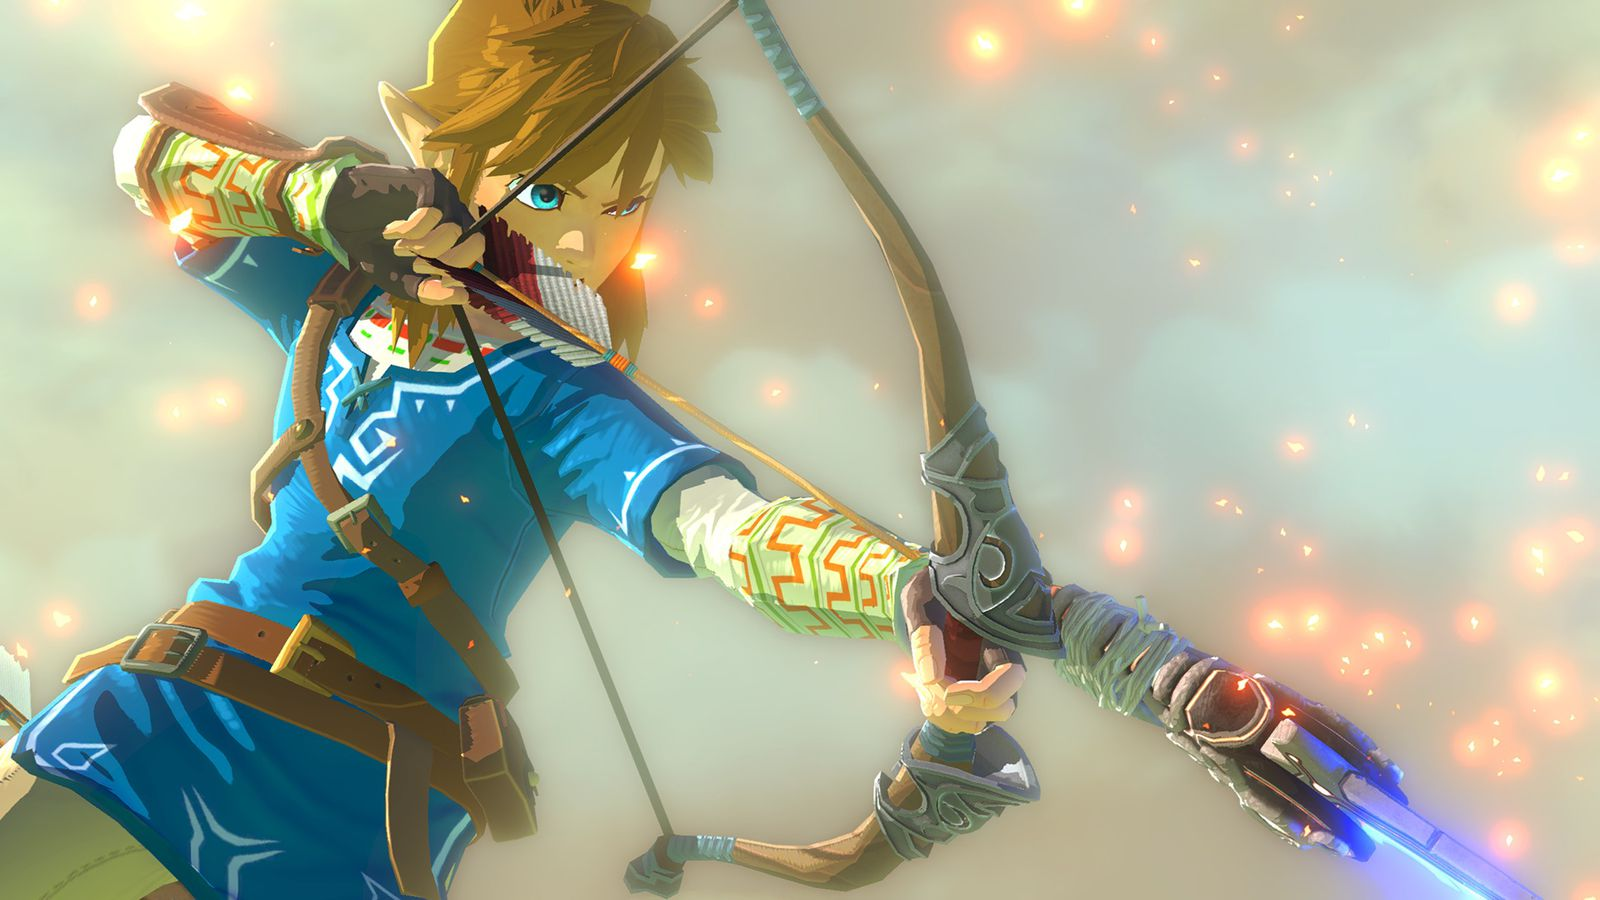 #3. The Legend of Zelda: Breath of the Wild